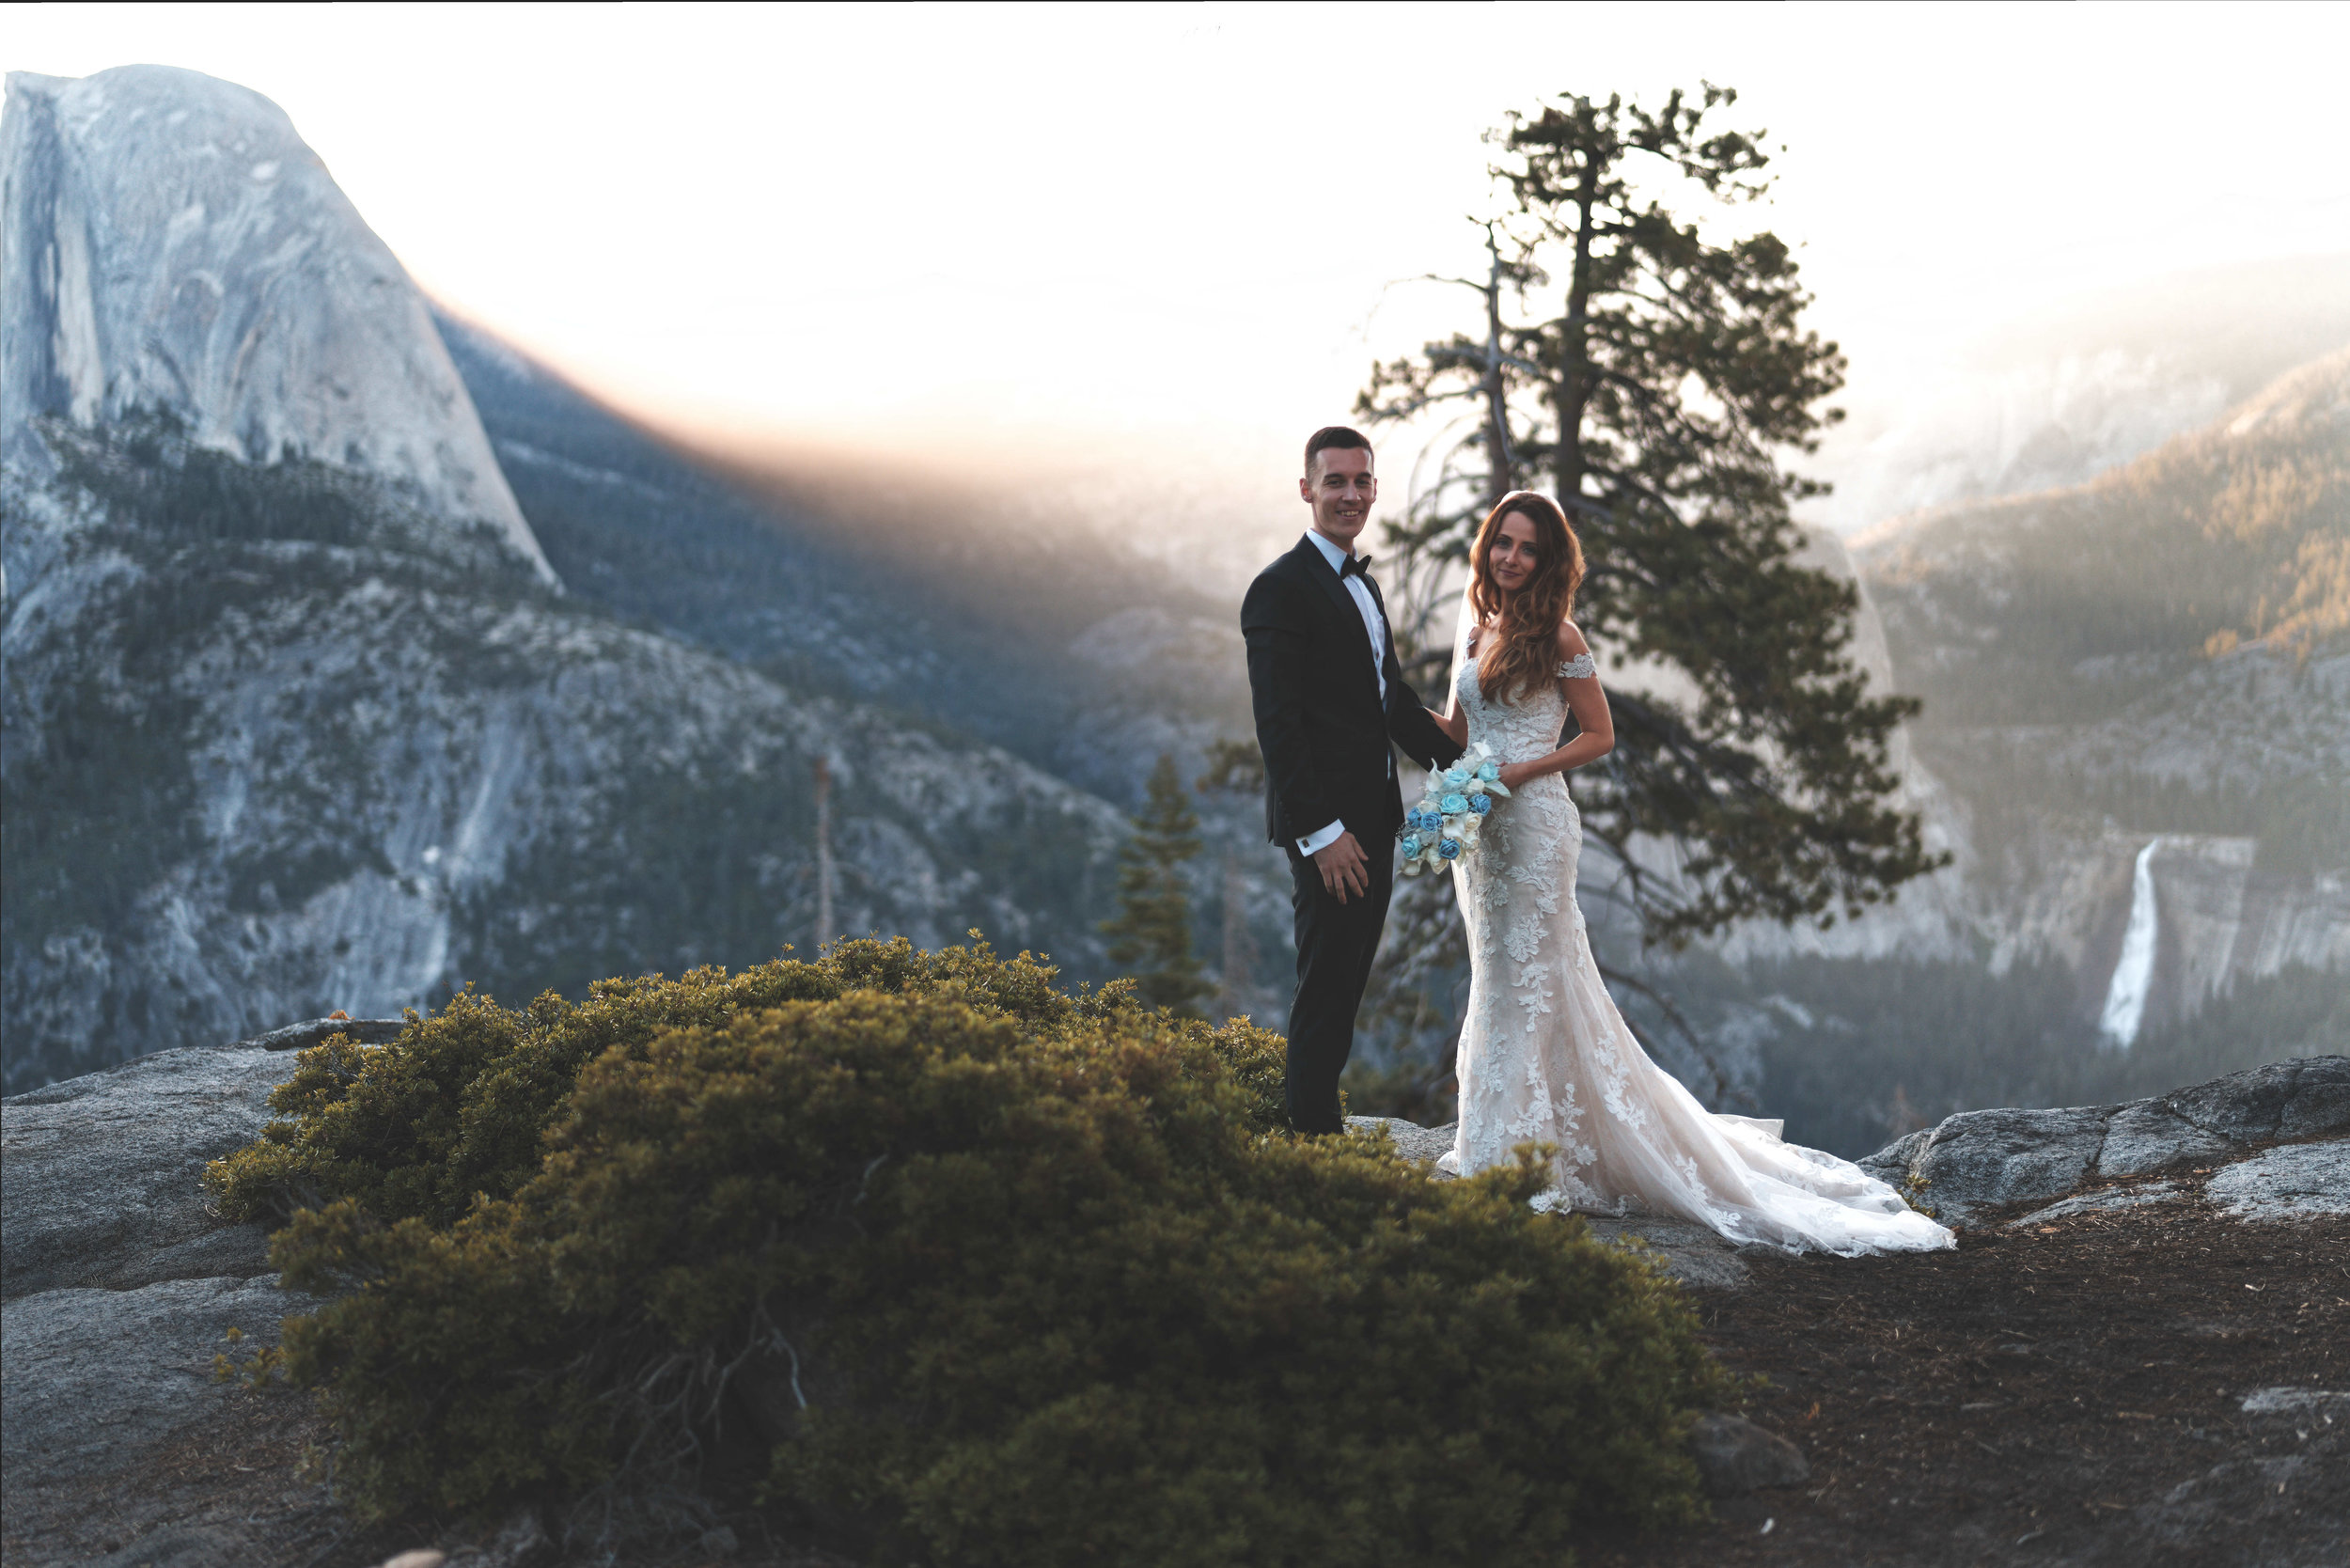 yosemite-adventure-wedding-amyjames (36).jpg